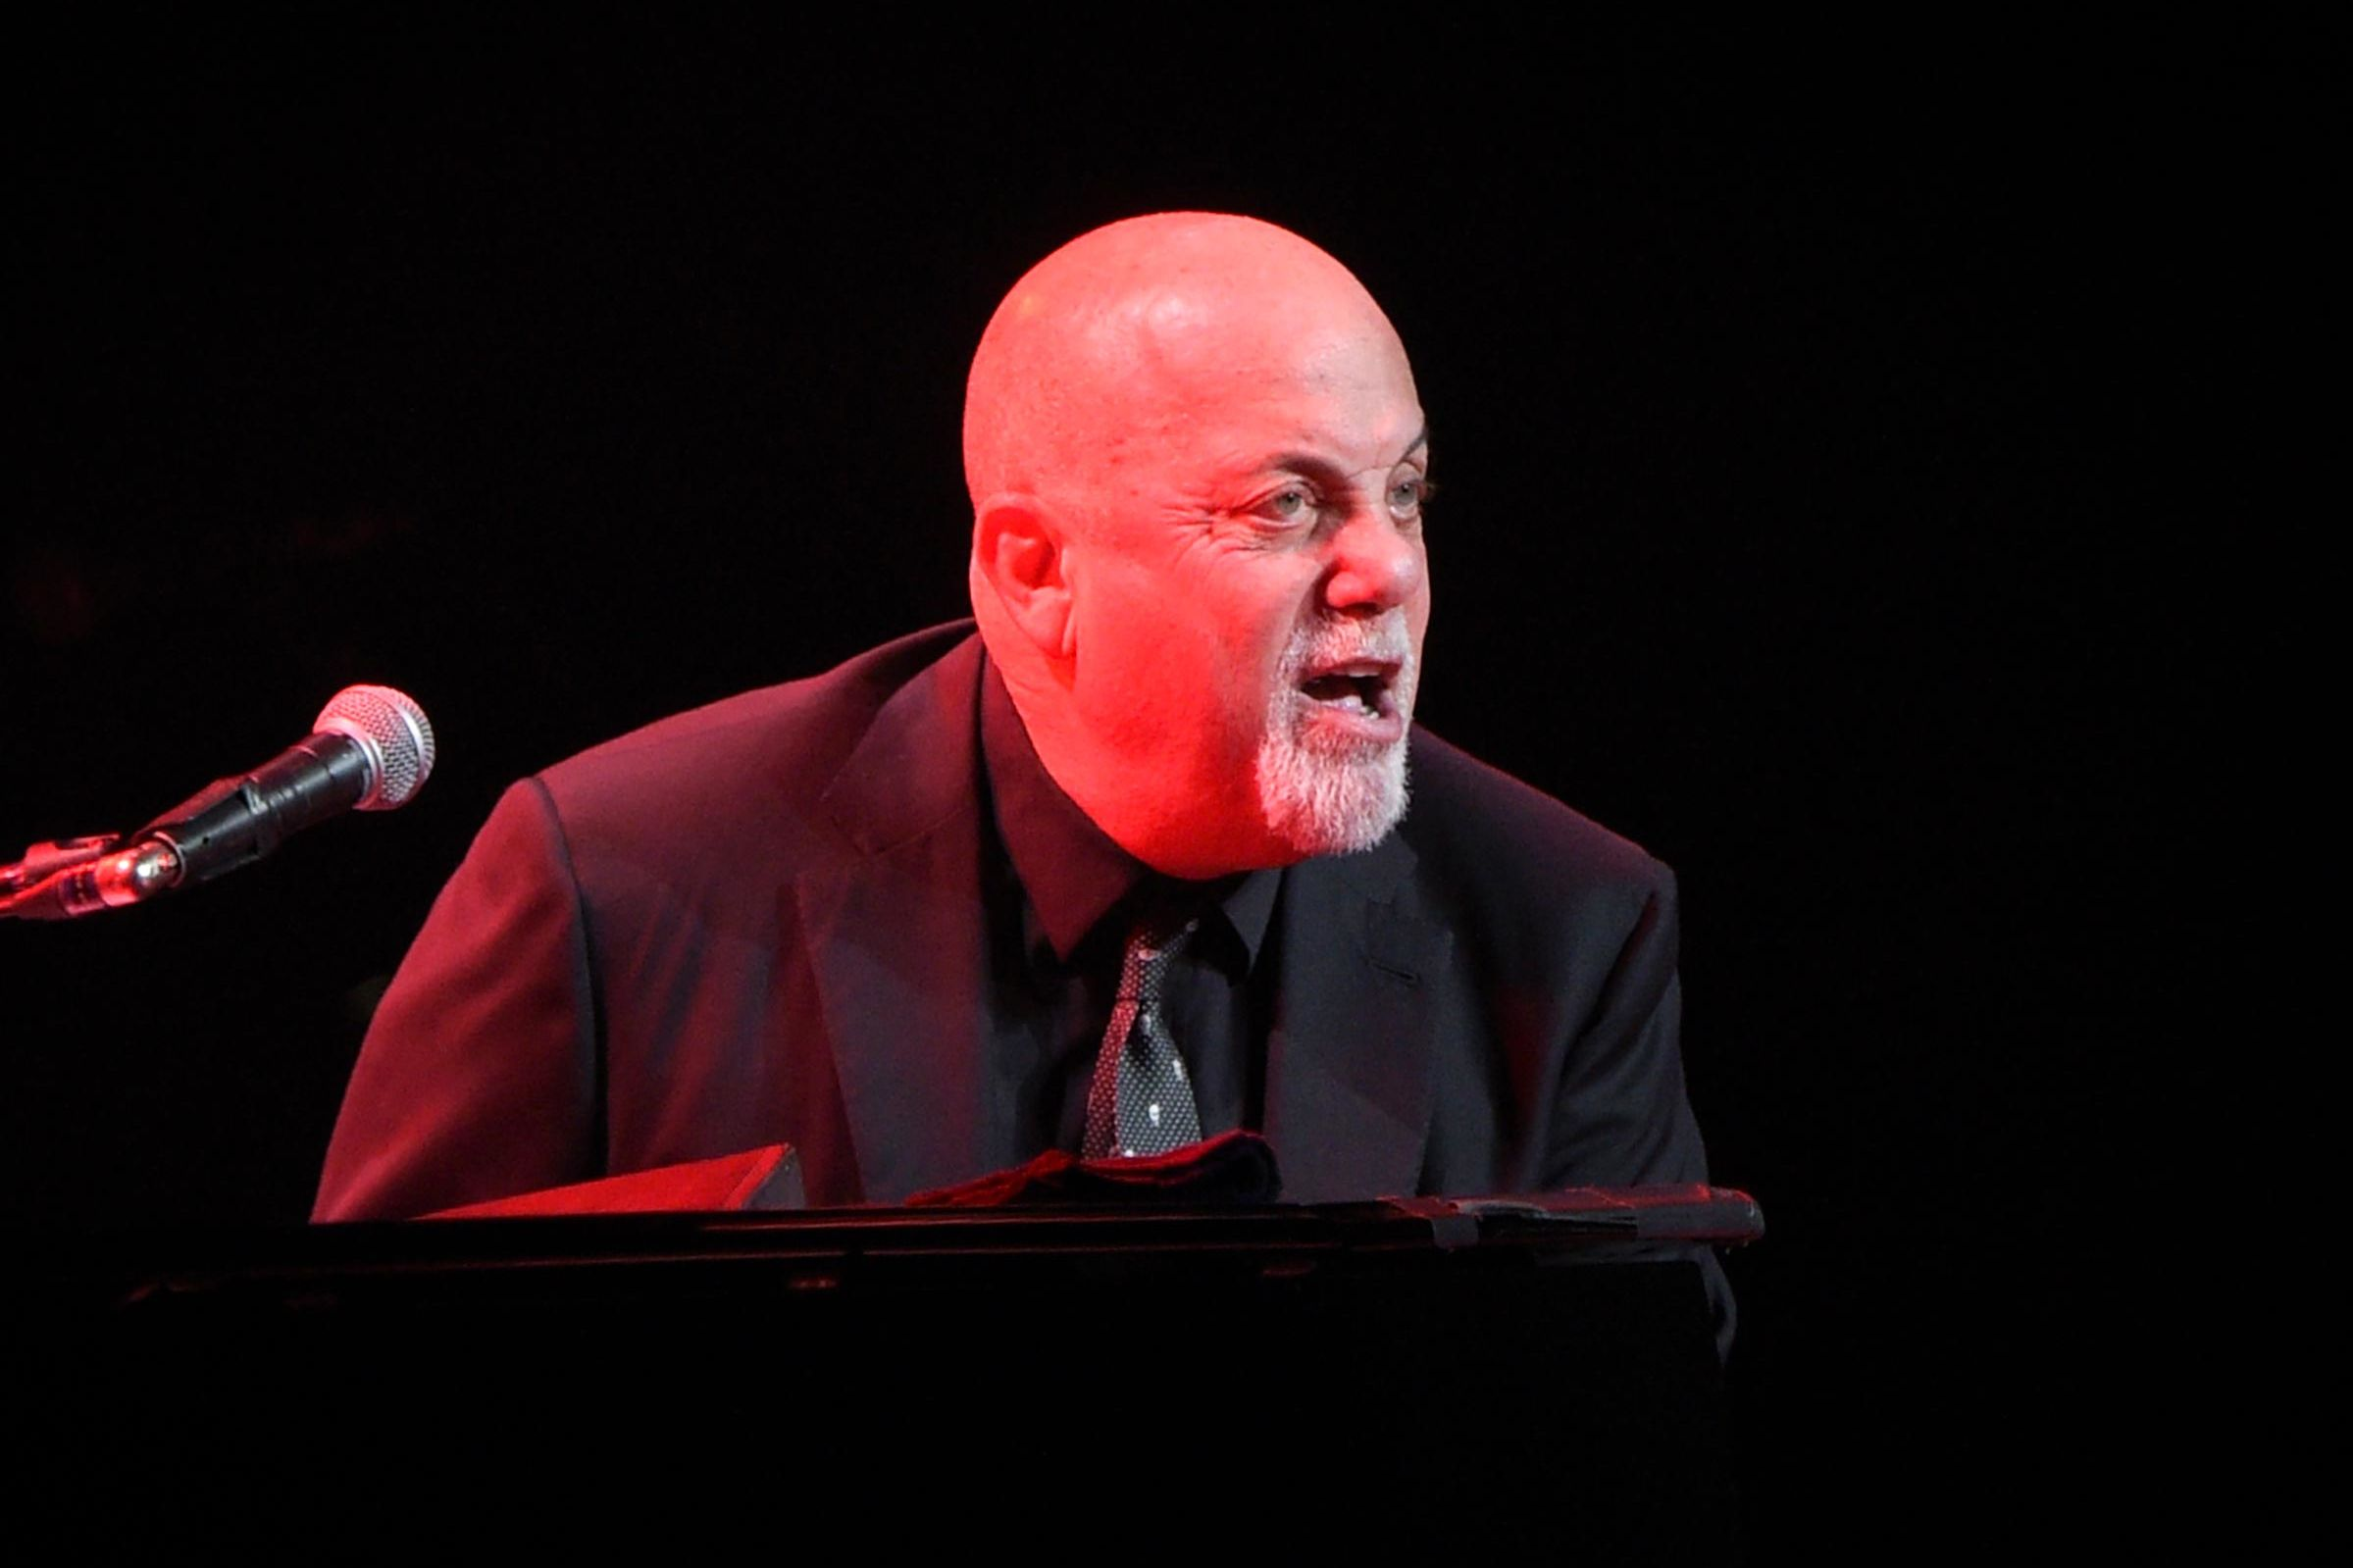 Billy Joel performs 'Miami 2017' in Miami, 2017